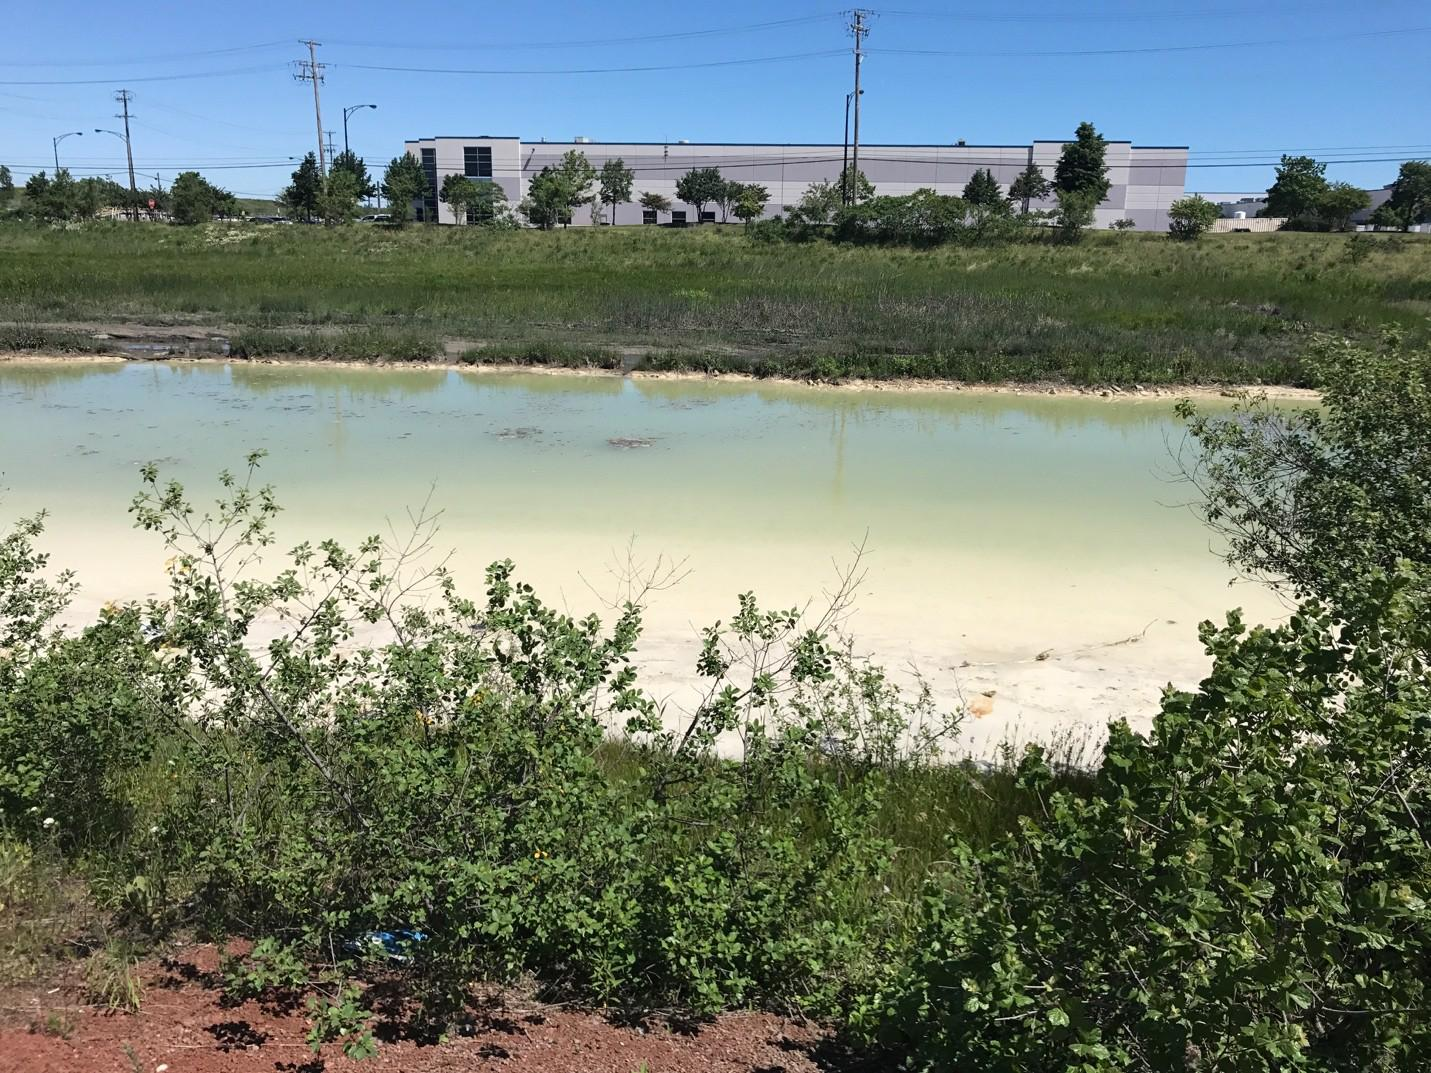 Environmental toxins from the Schroud property have polluted Indian Creek, which flows through the northern portion of the site. (Courtesy Chicago Legal Clinic)